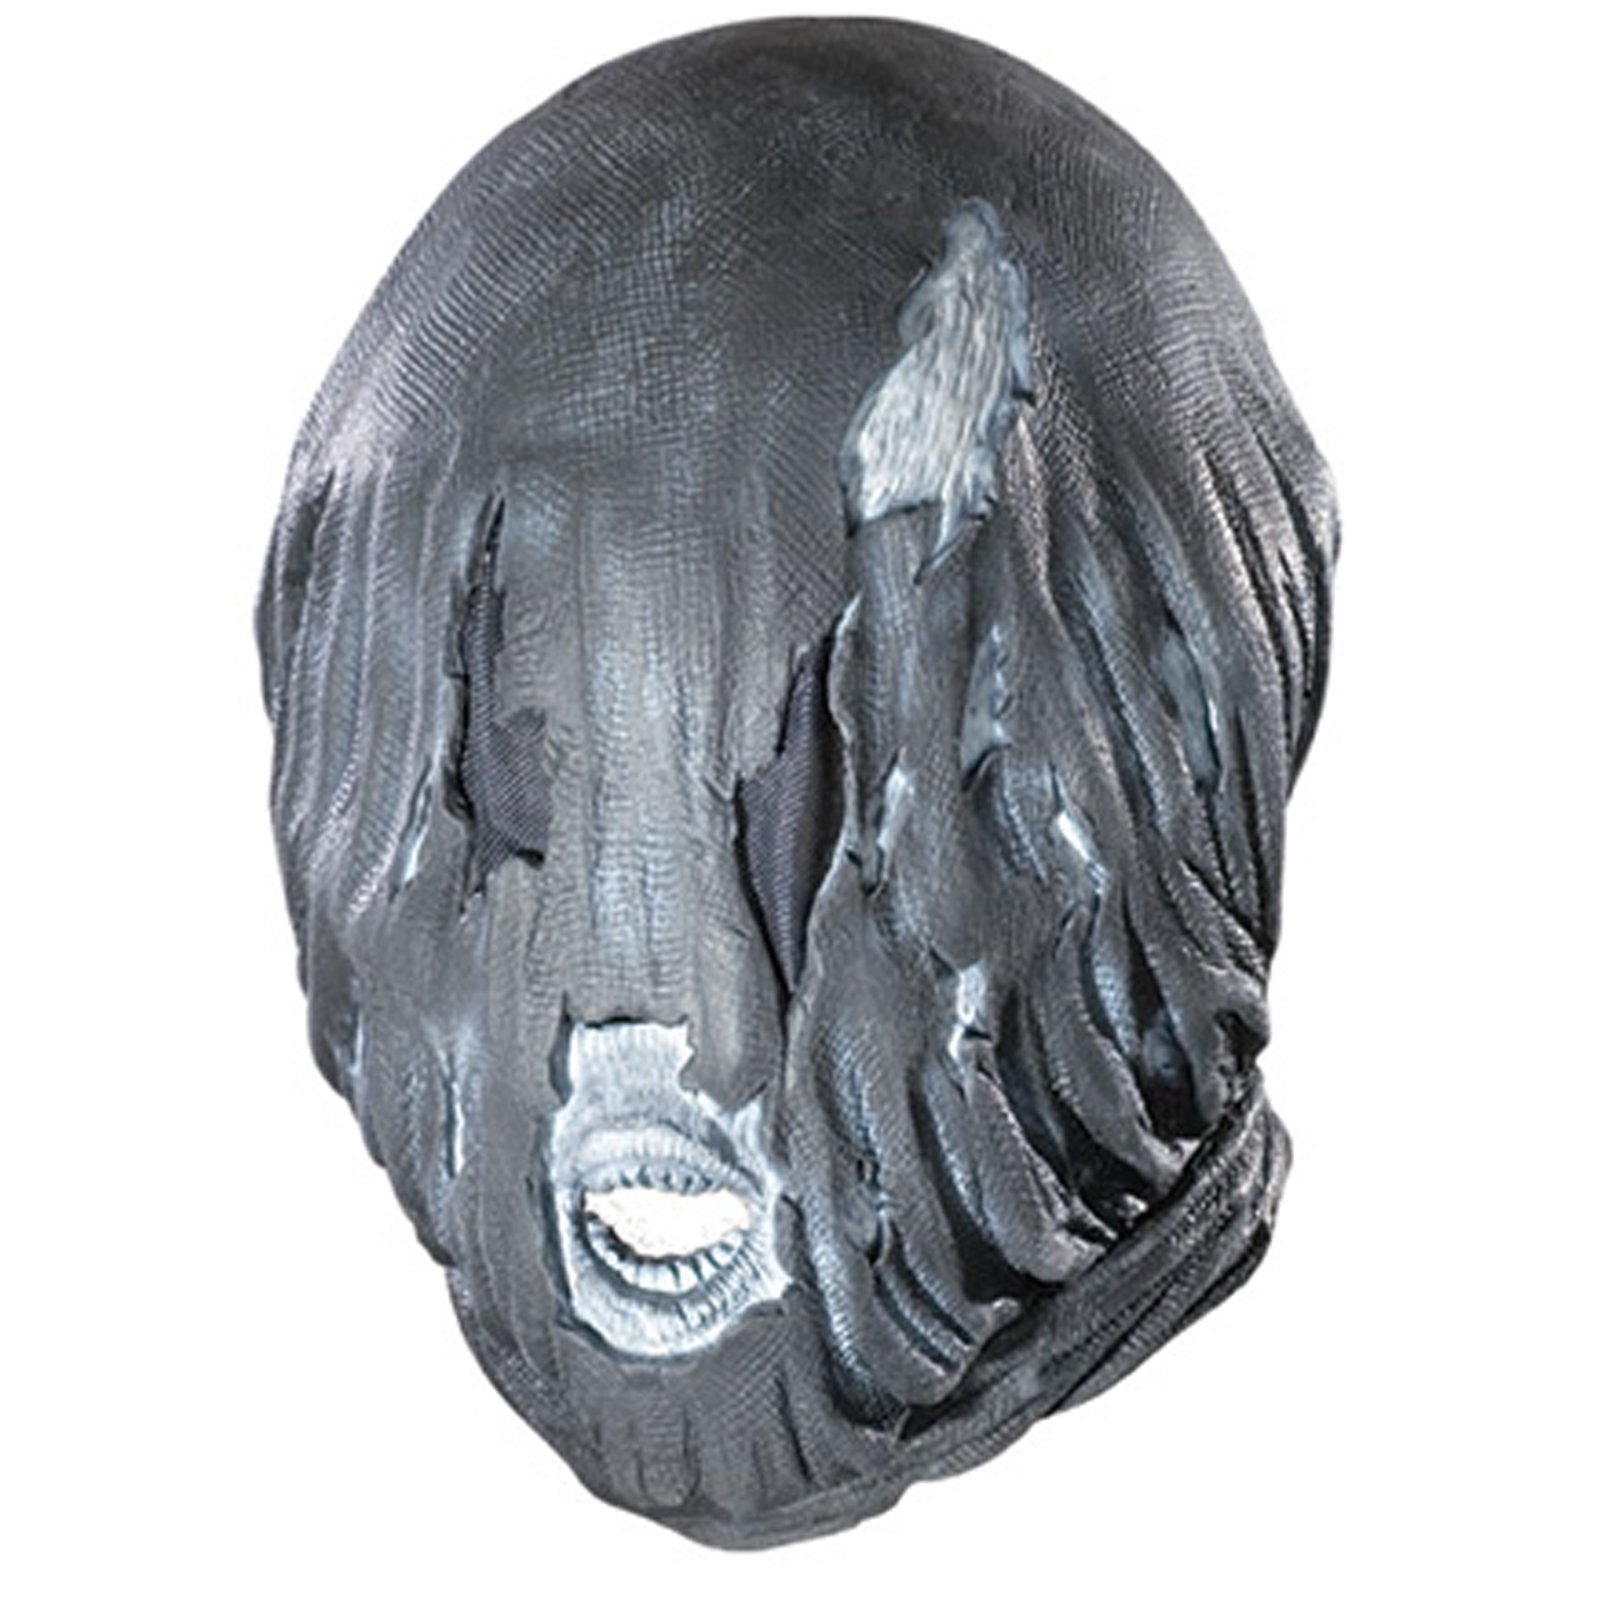 Harry Potter & The Half-Blood Prince Dementor Deluxe Adult Mask